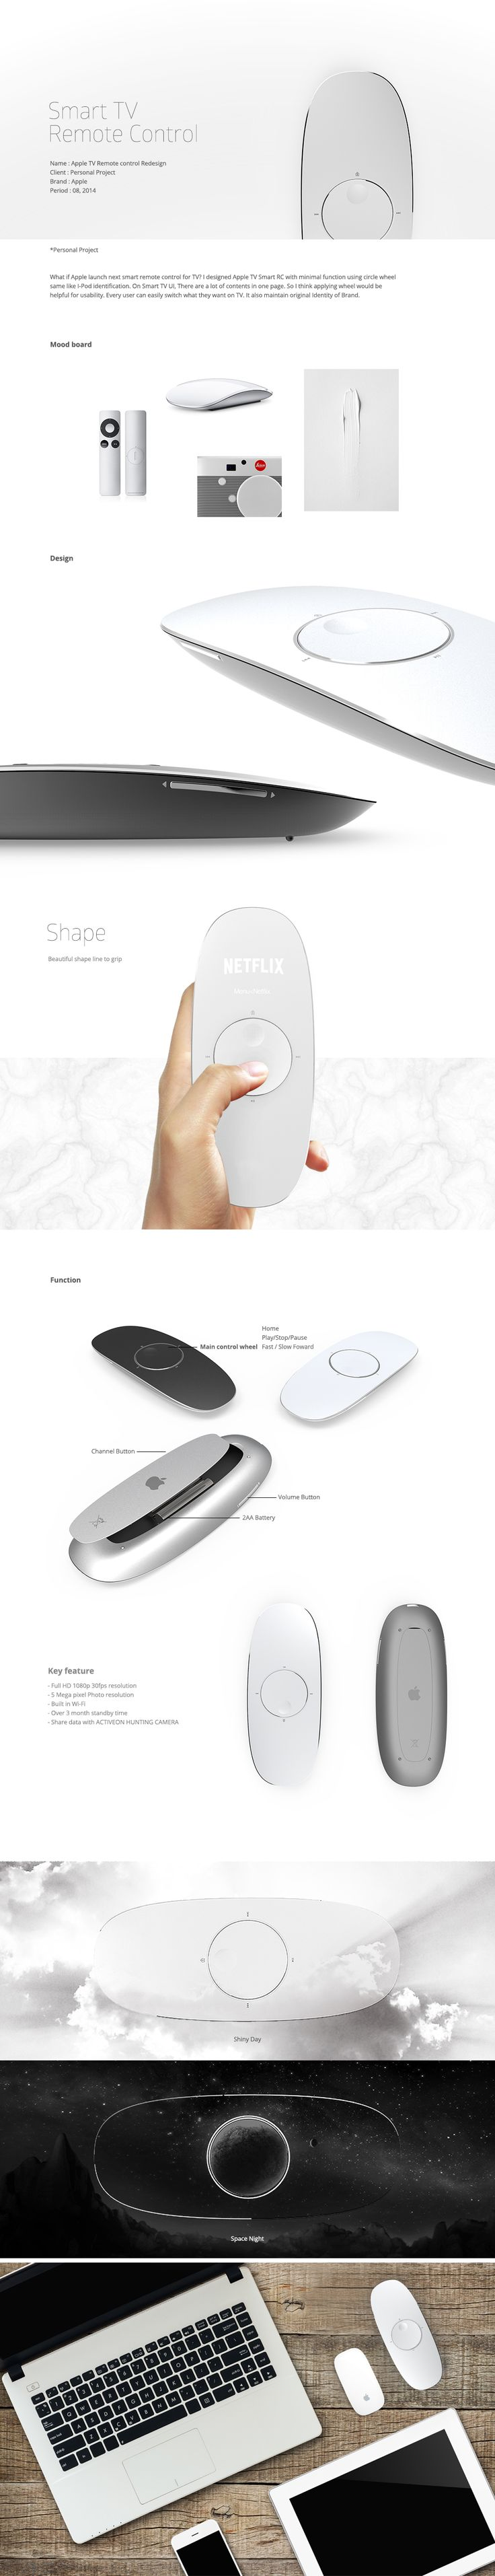 What if Apple launch next smart remote control for TV? I designed Apple TV Smart RC with minimal function using circle wheel same like I-Pod identification. On Smart TV UI, There are a lot of contents in one page. So I think applying wheel would be helpfu…